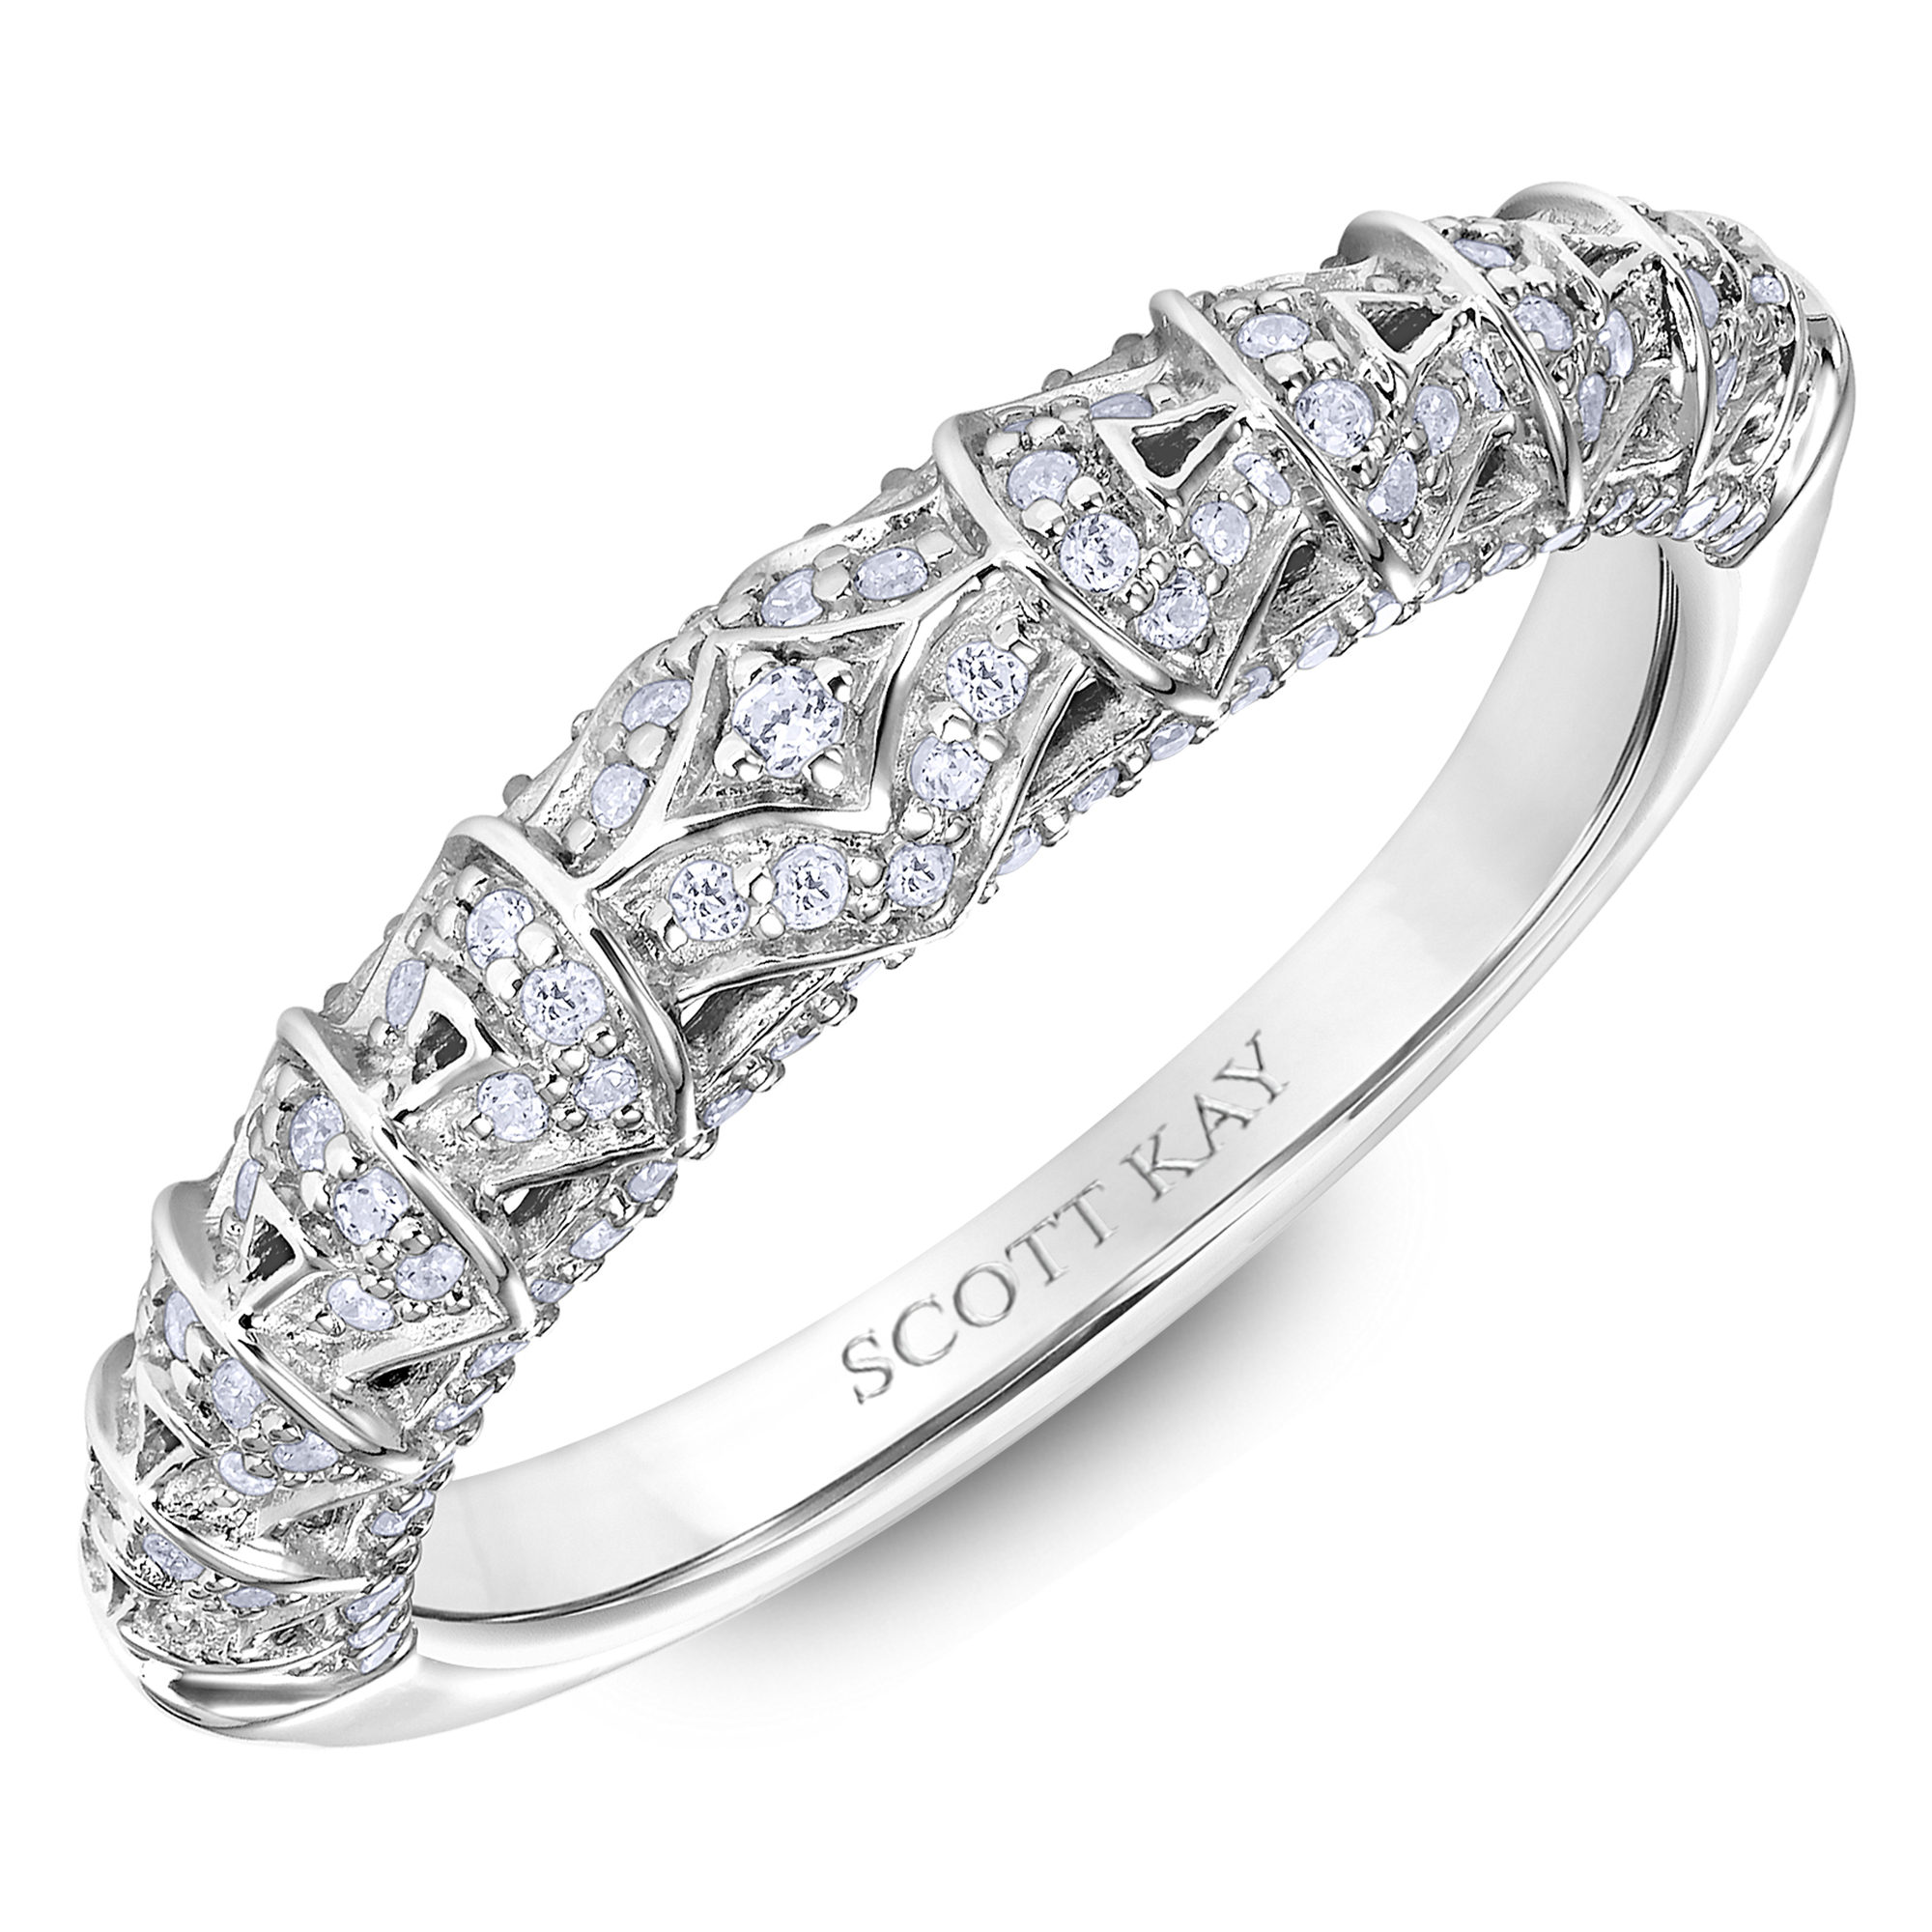 and for jewerlycom image concept rings files jaide diamond wedding ring scott kay fascinating keshelle settings stunning engagement trend bolenz